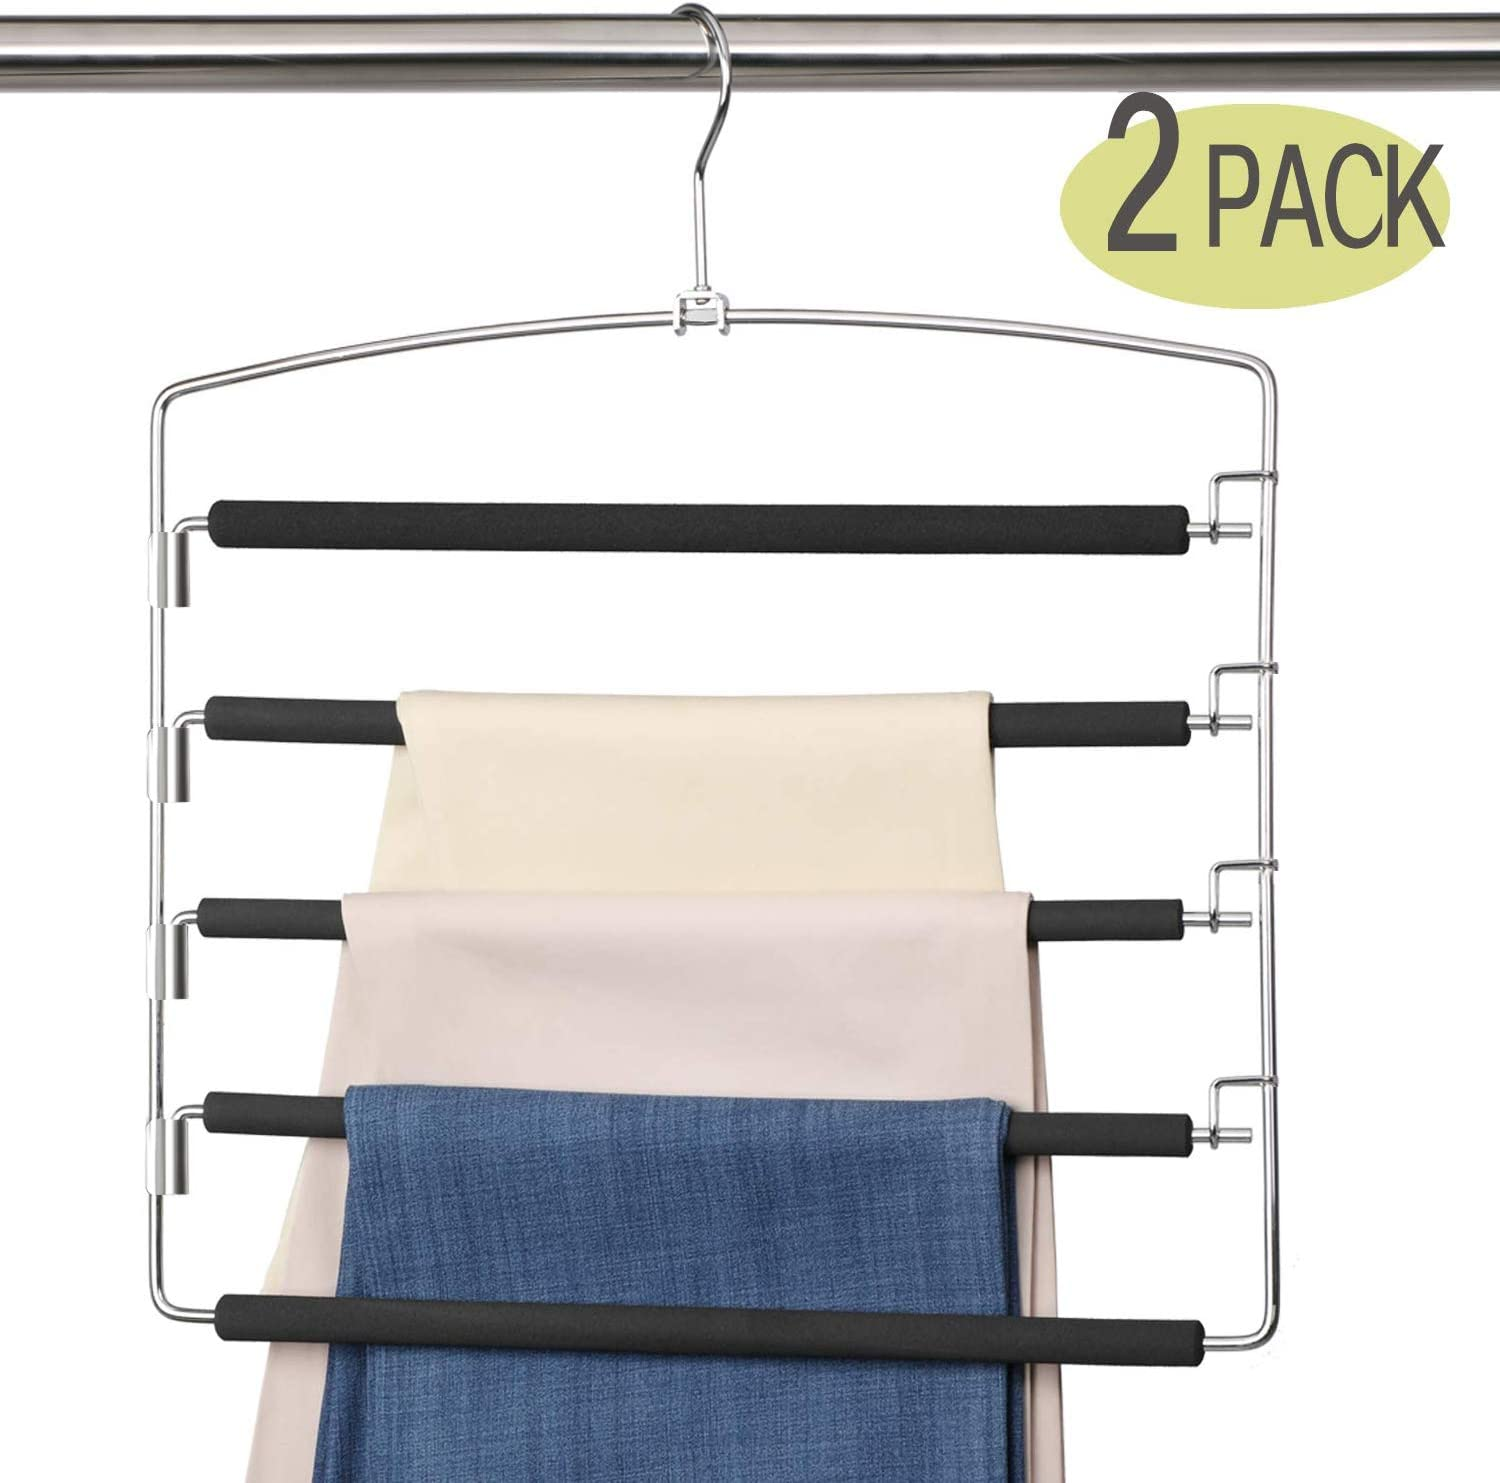 MeetU Pants Hangers 5 Layers Stainless Steel Non-Slip Foam Padded Swing Arm Space Saving Clothes Slack Hangers Closet Storage Organizer for Pants Jeans Trousers Skirts Scarf Ties Towels(Pack of 2)